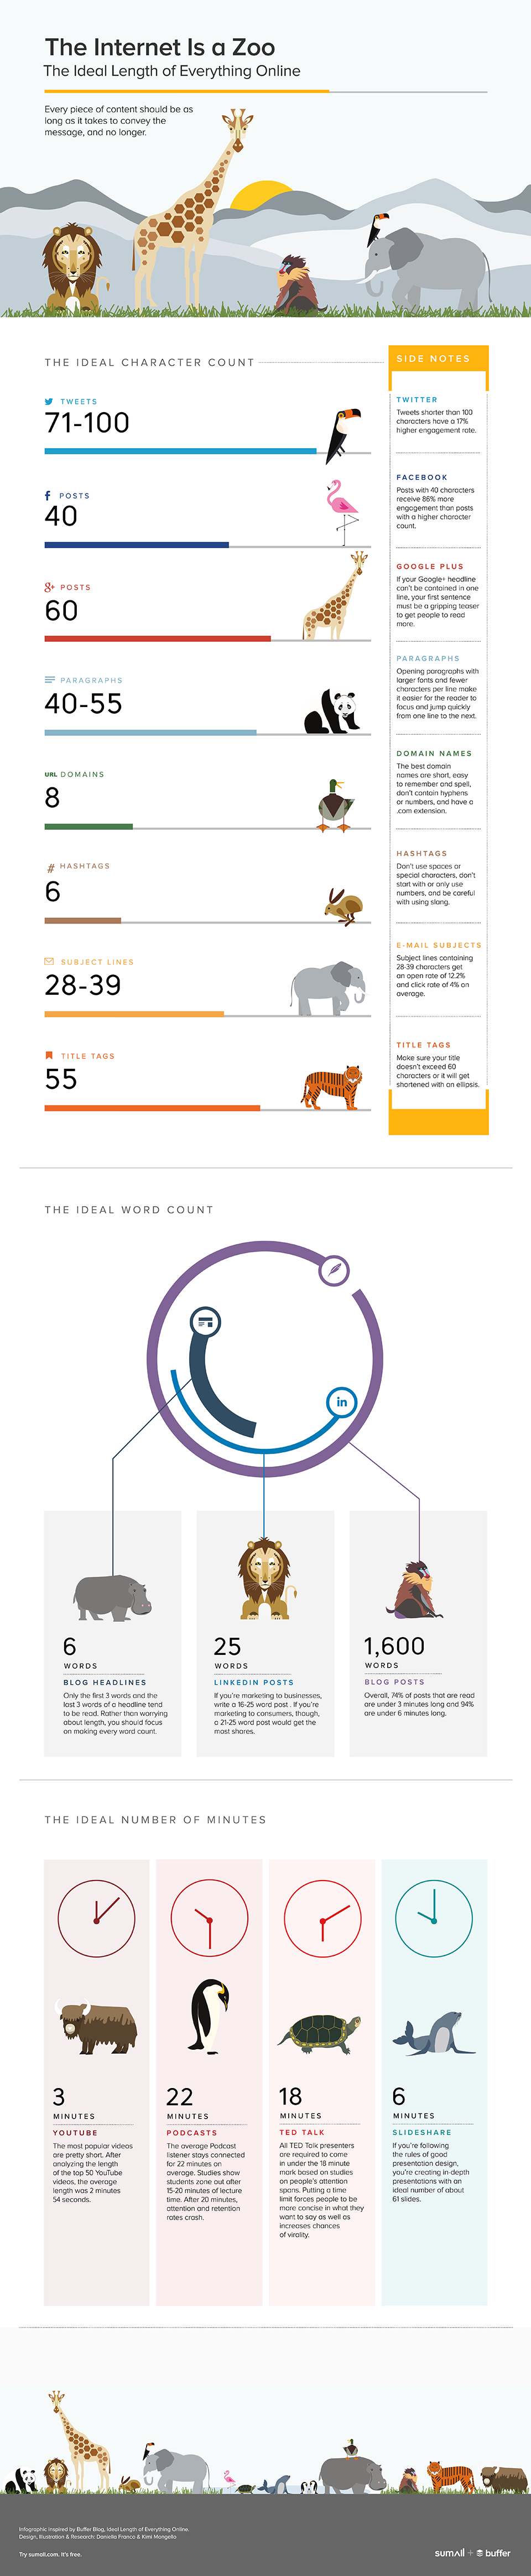 Internet-is-a-Zoo-Infographic